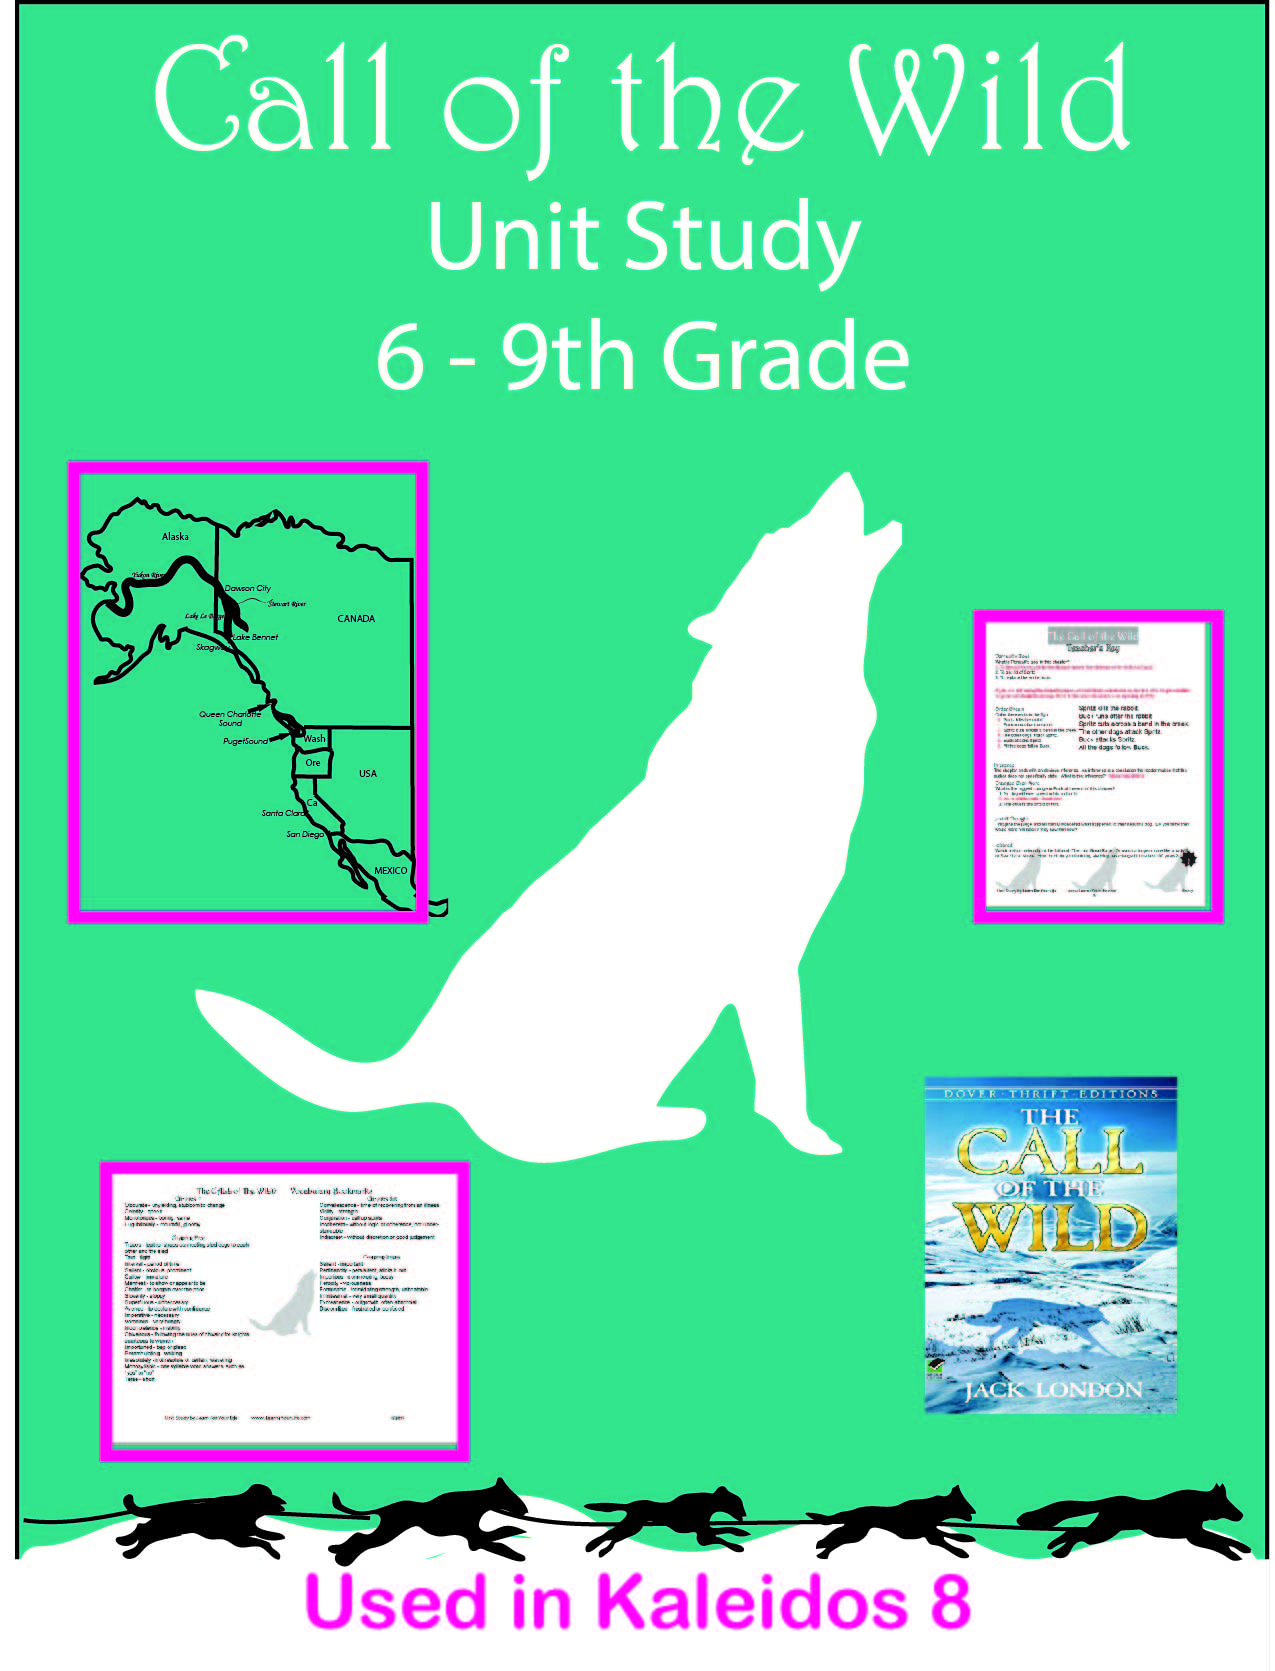 Call of the Wild Unit Study Poster